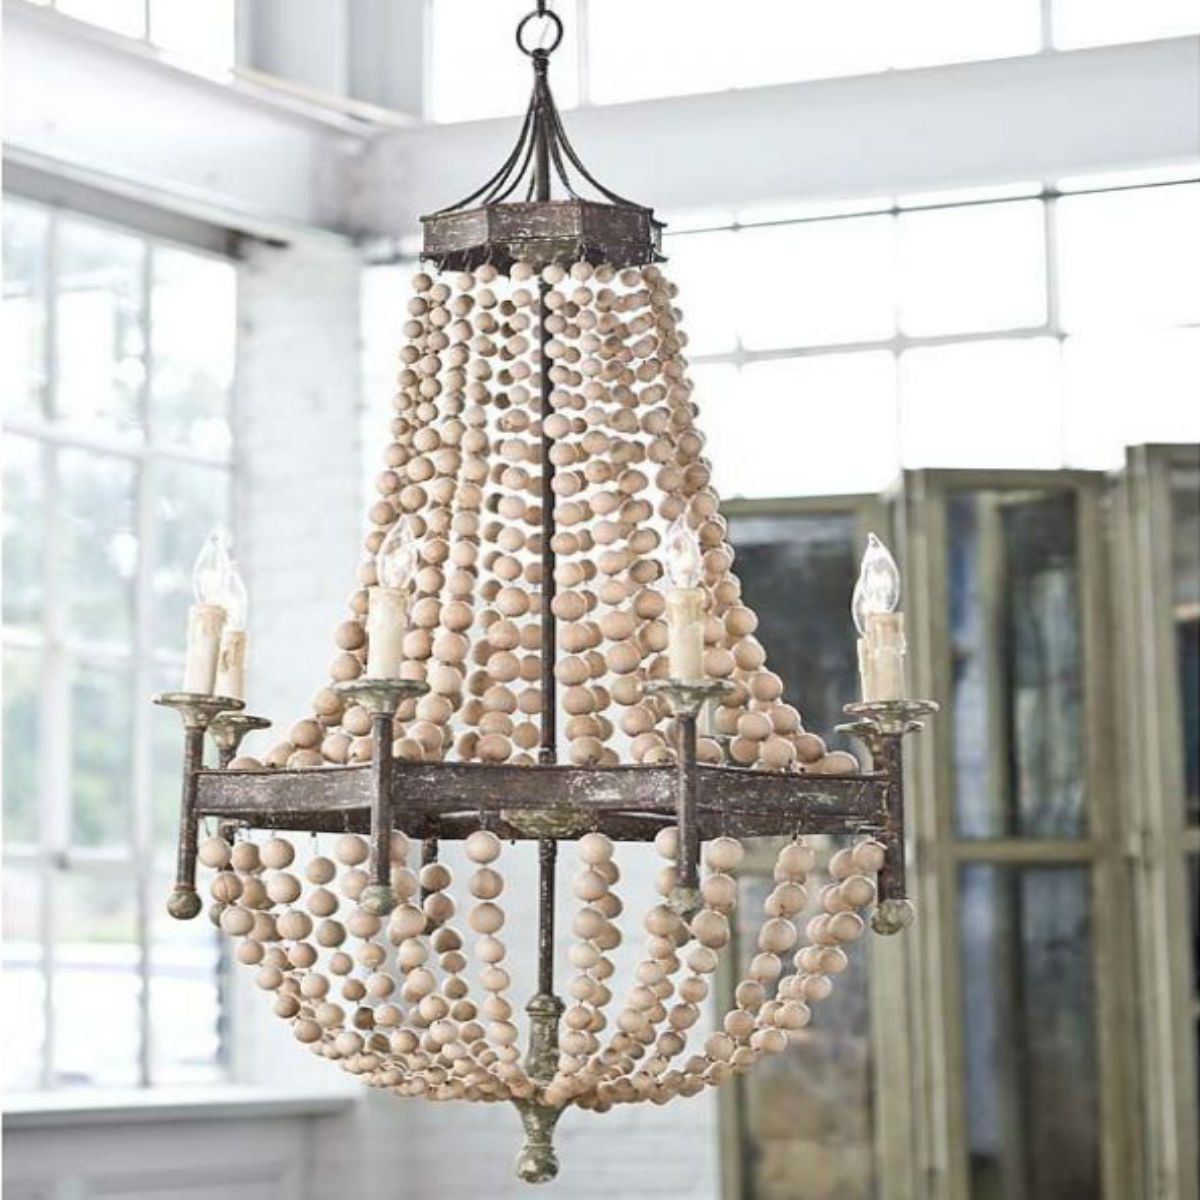 Oyster shell chandelier ideas homesfeed creative work of oyster shells pendant chandelier for coastal home style aloadofball Image collections